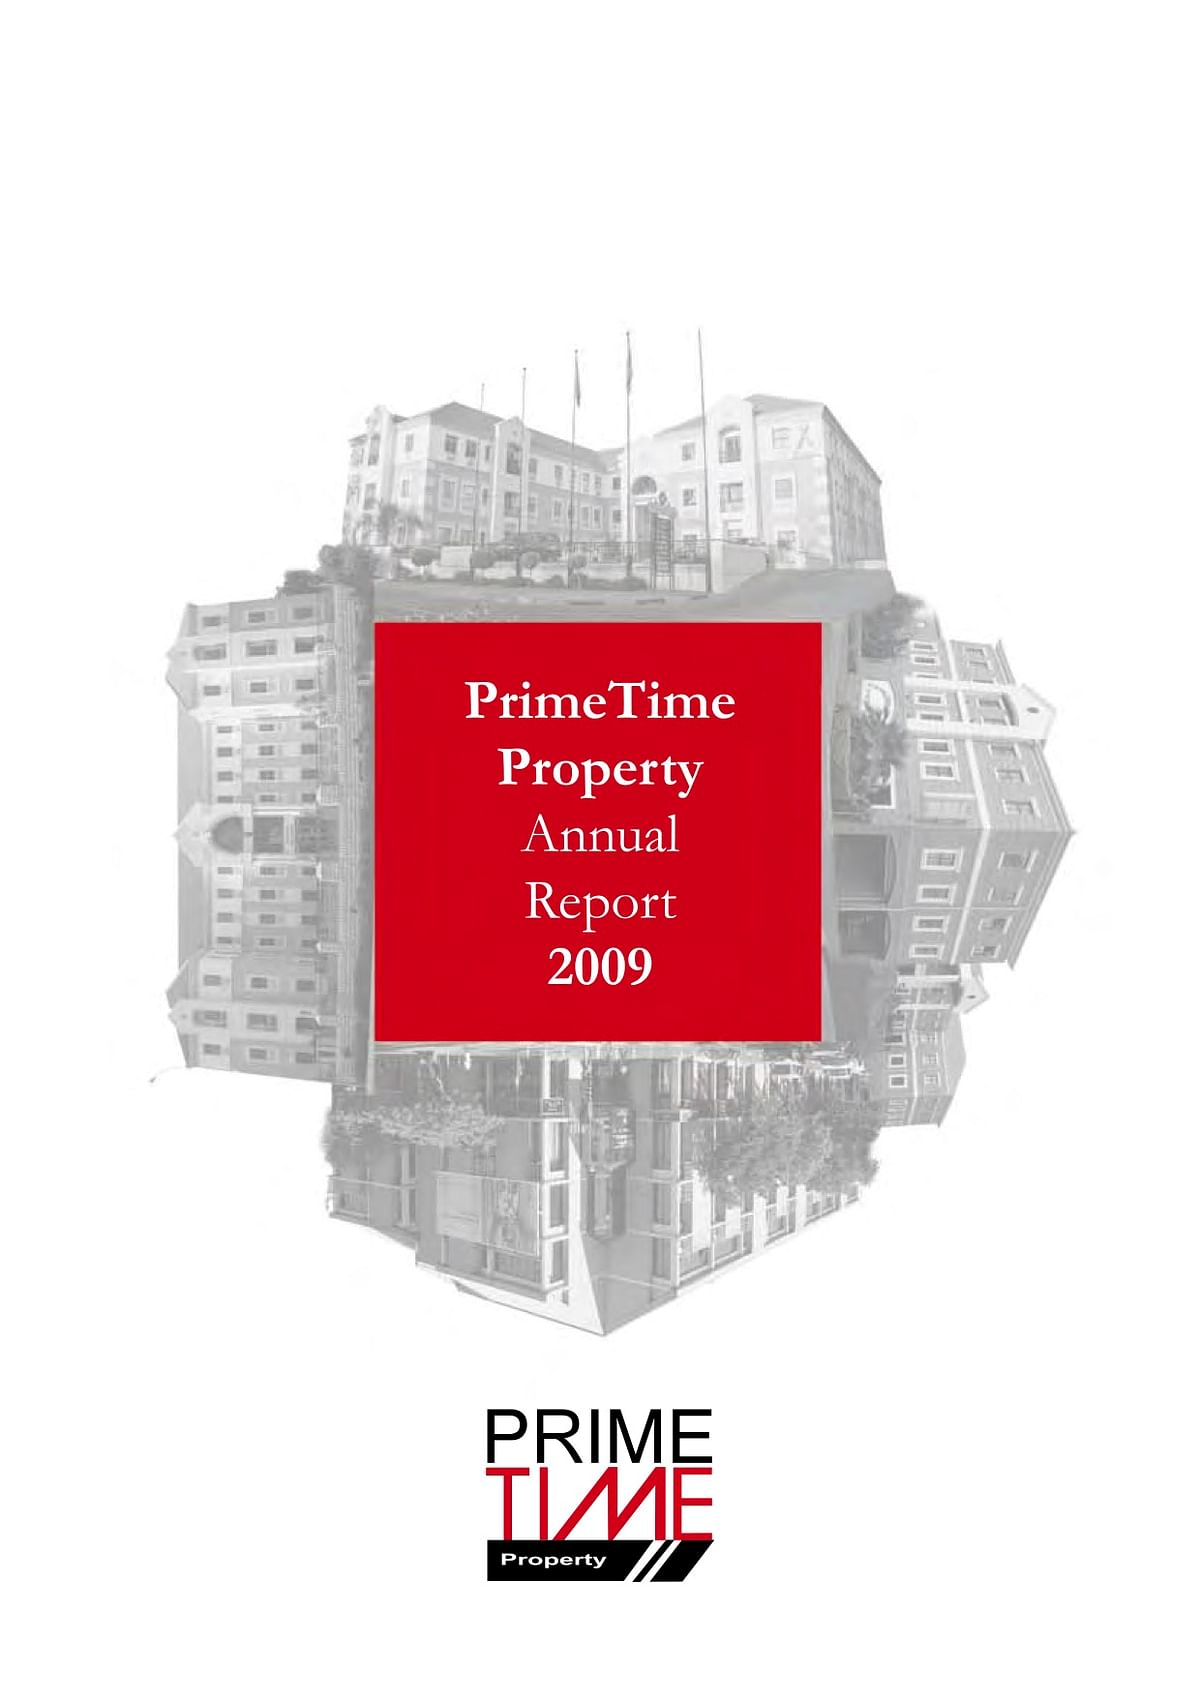 PrimeTime Property Holdings Annual Report 2009